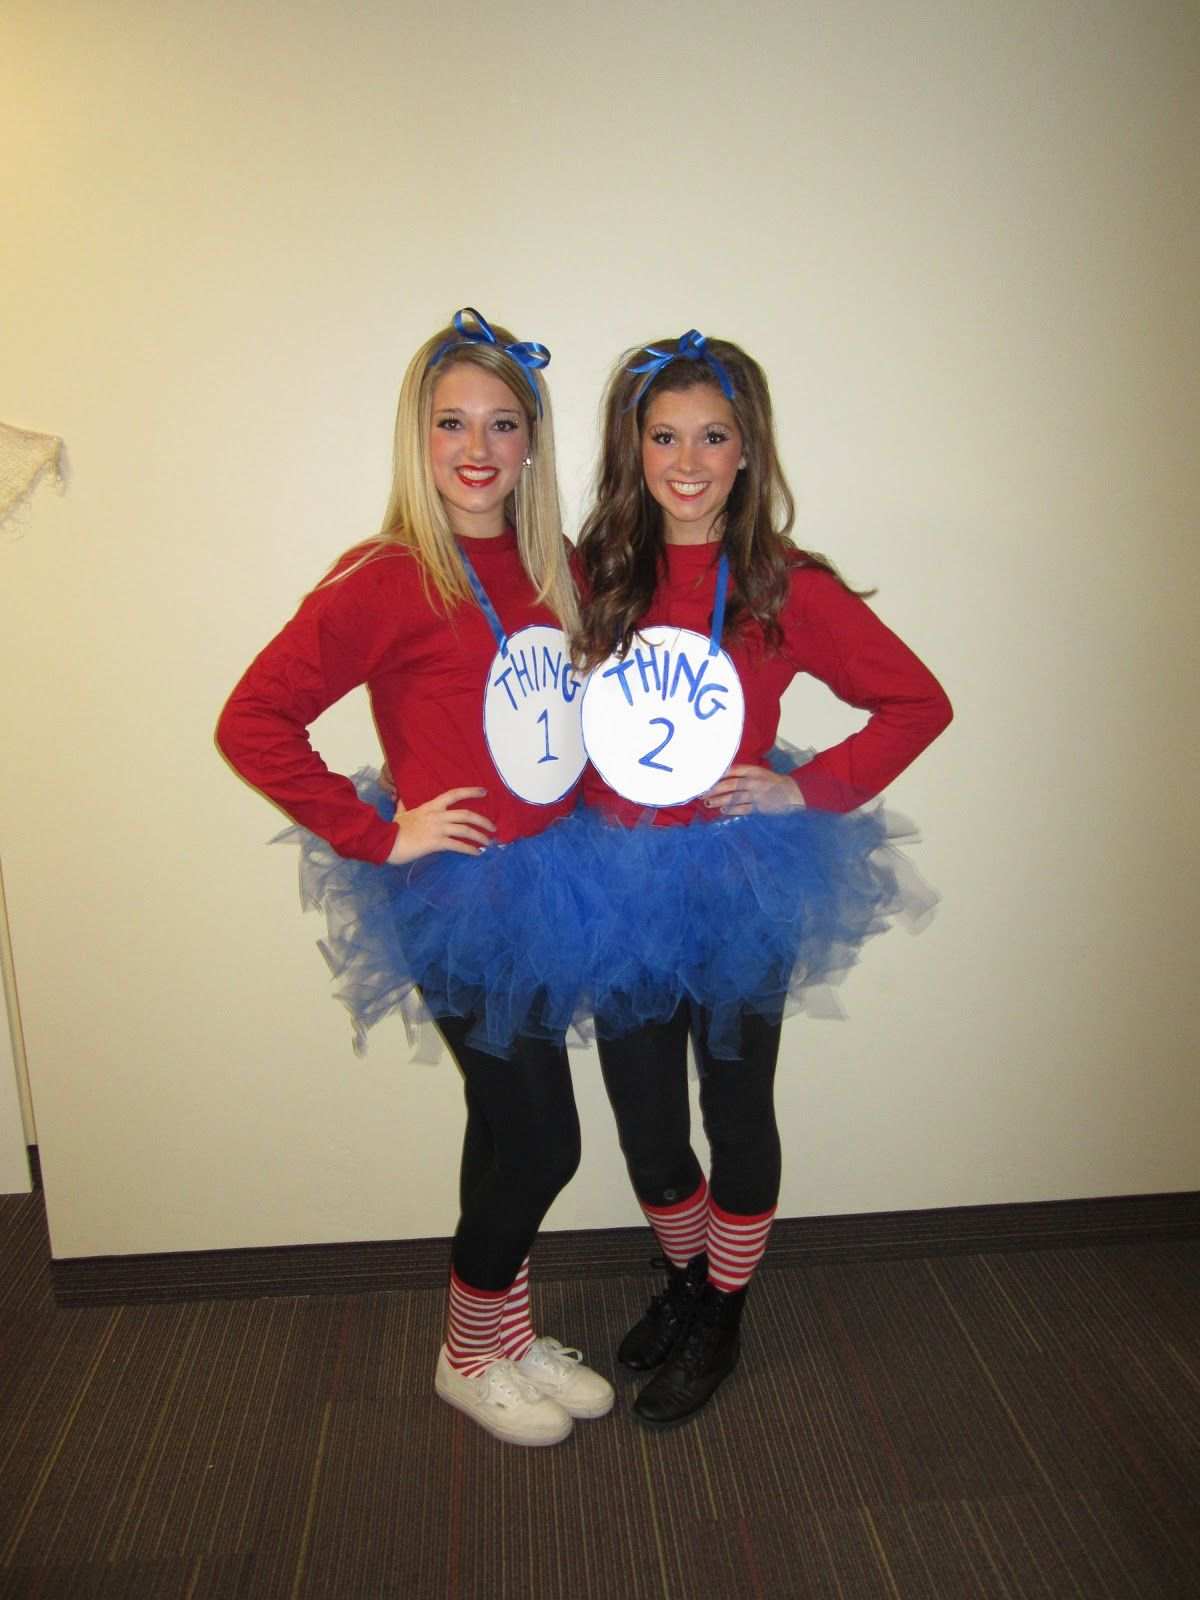 images for thing one and thing two costumes 2 person halloween - Thing 1 Thing 2 Halloween Costume